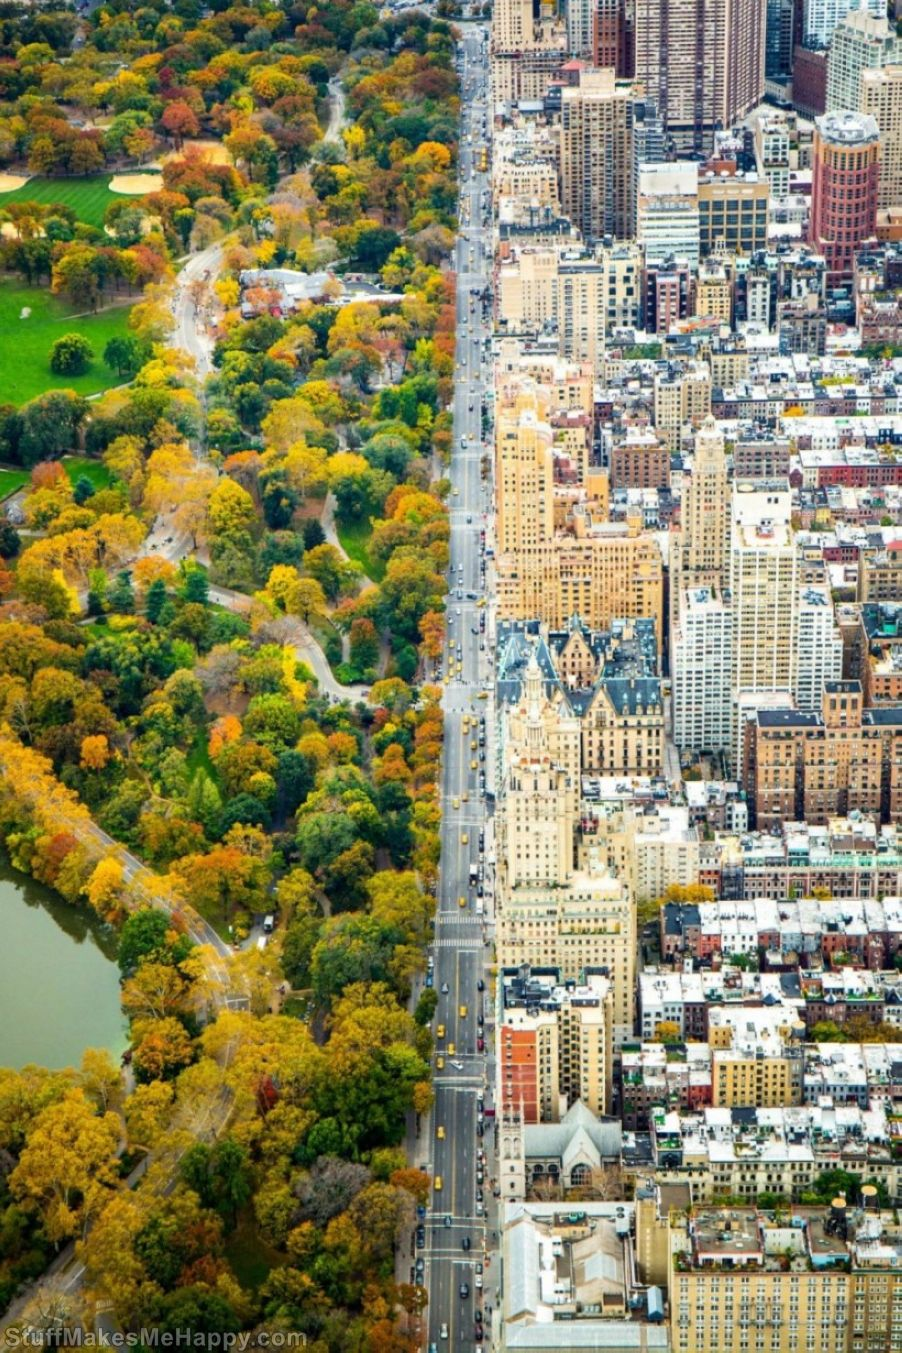 15 Incredible Nature and City Photos Made Without Photoshop